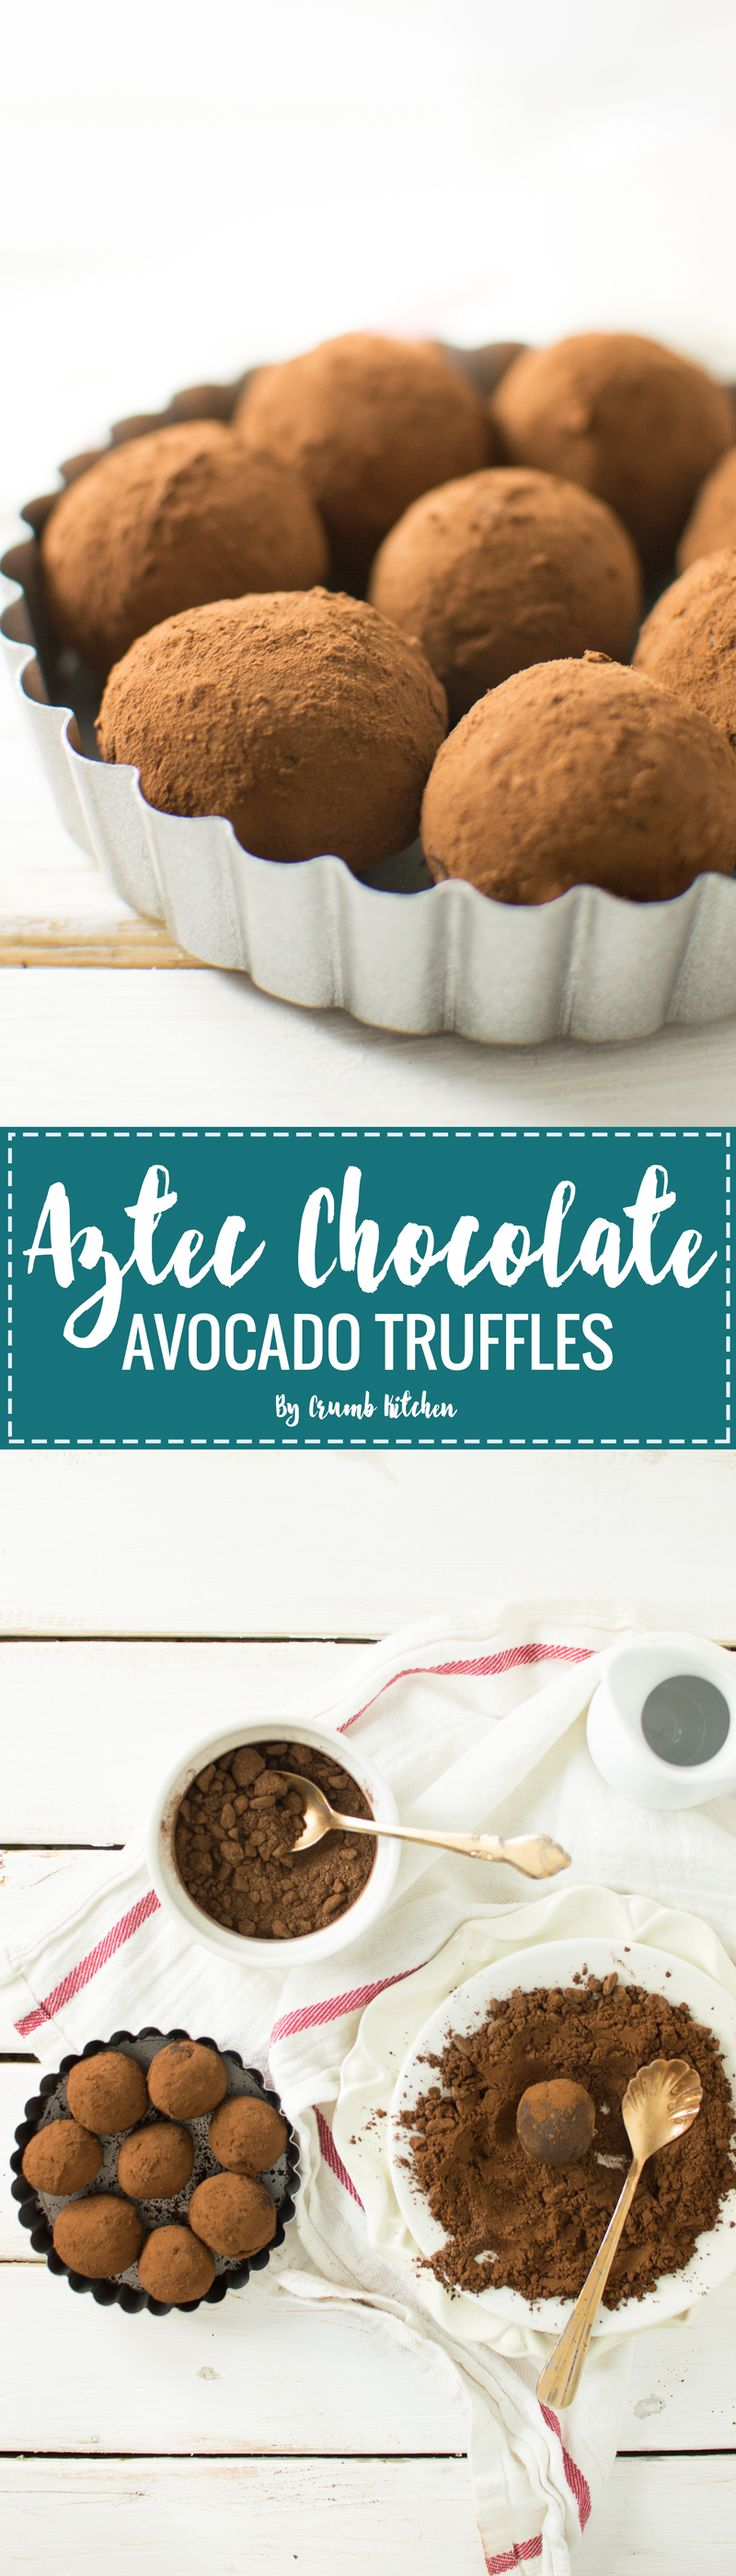 MThese sinful Aztec Chocolate Avocado Truffles are made from pure dark chocolate and mashed avocado, rolled in Aztec hot chocolate mix. | Crumb Kitchen